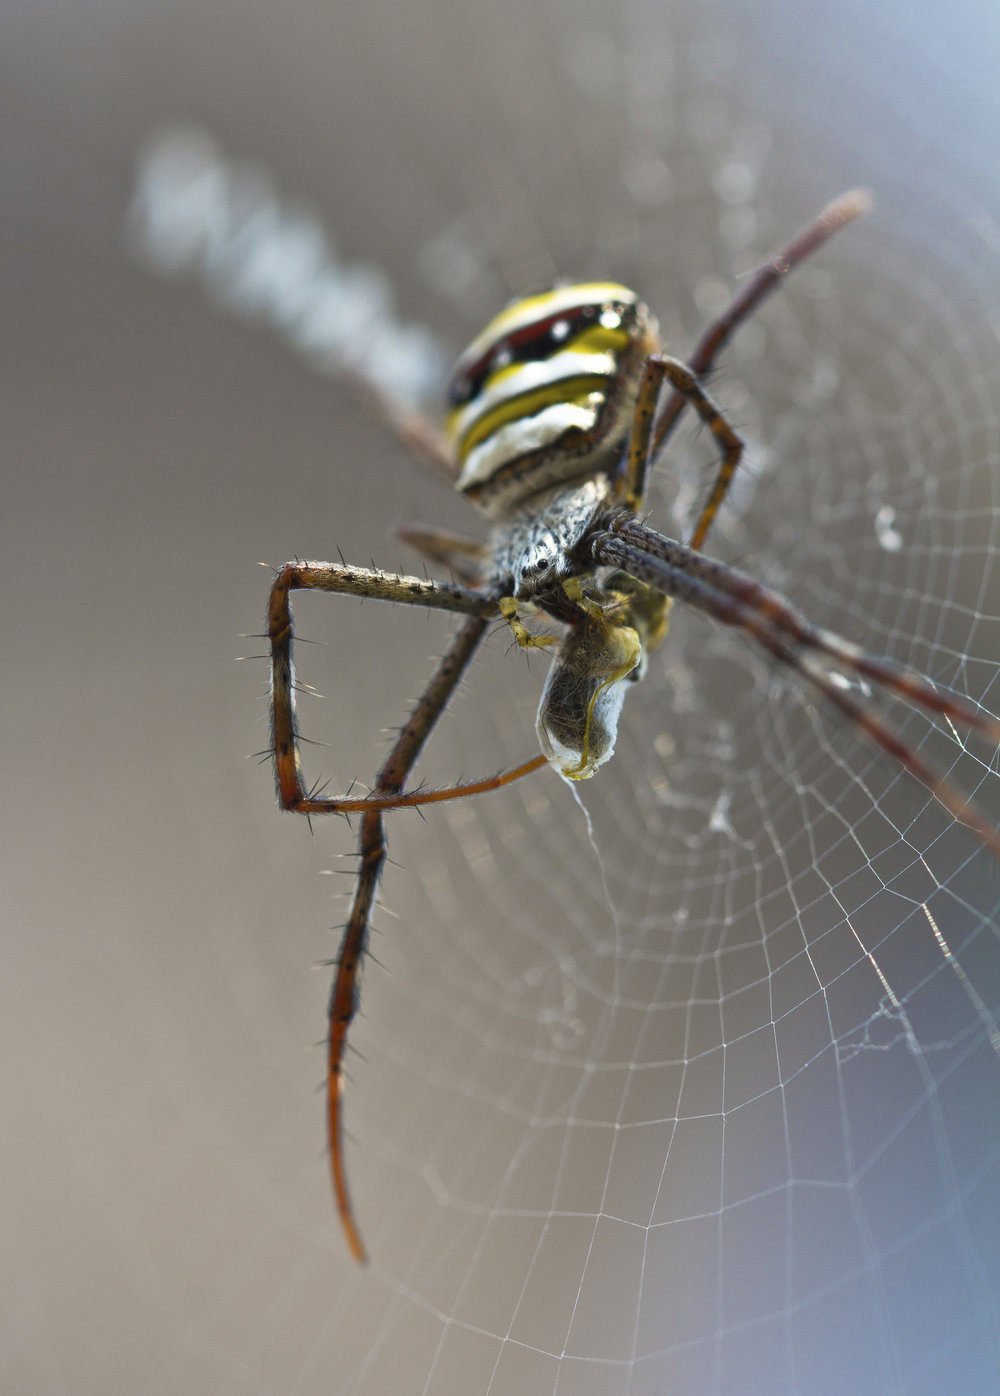 An orb-weaver spider wraps up her prey in Luang Prabang, Laos